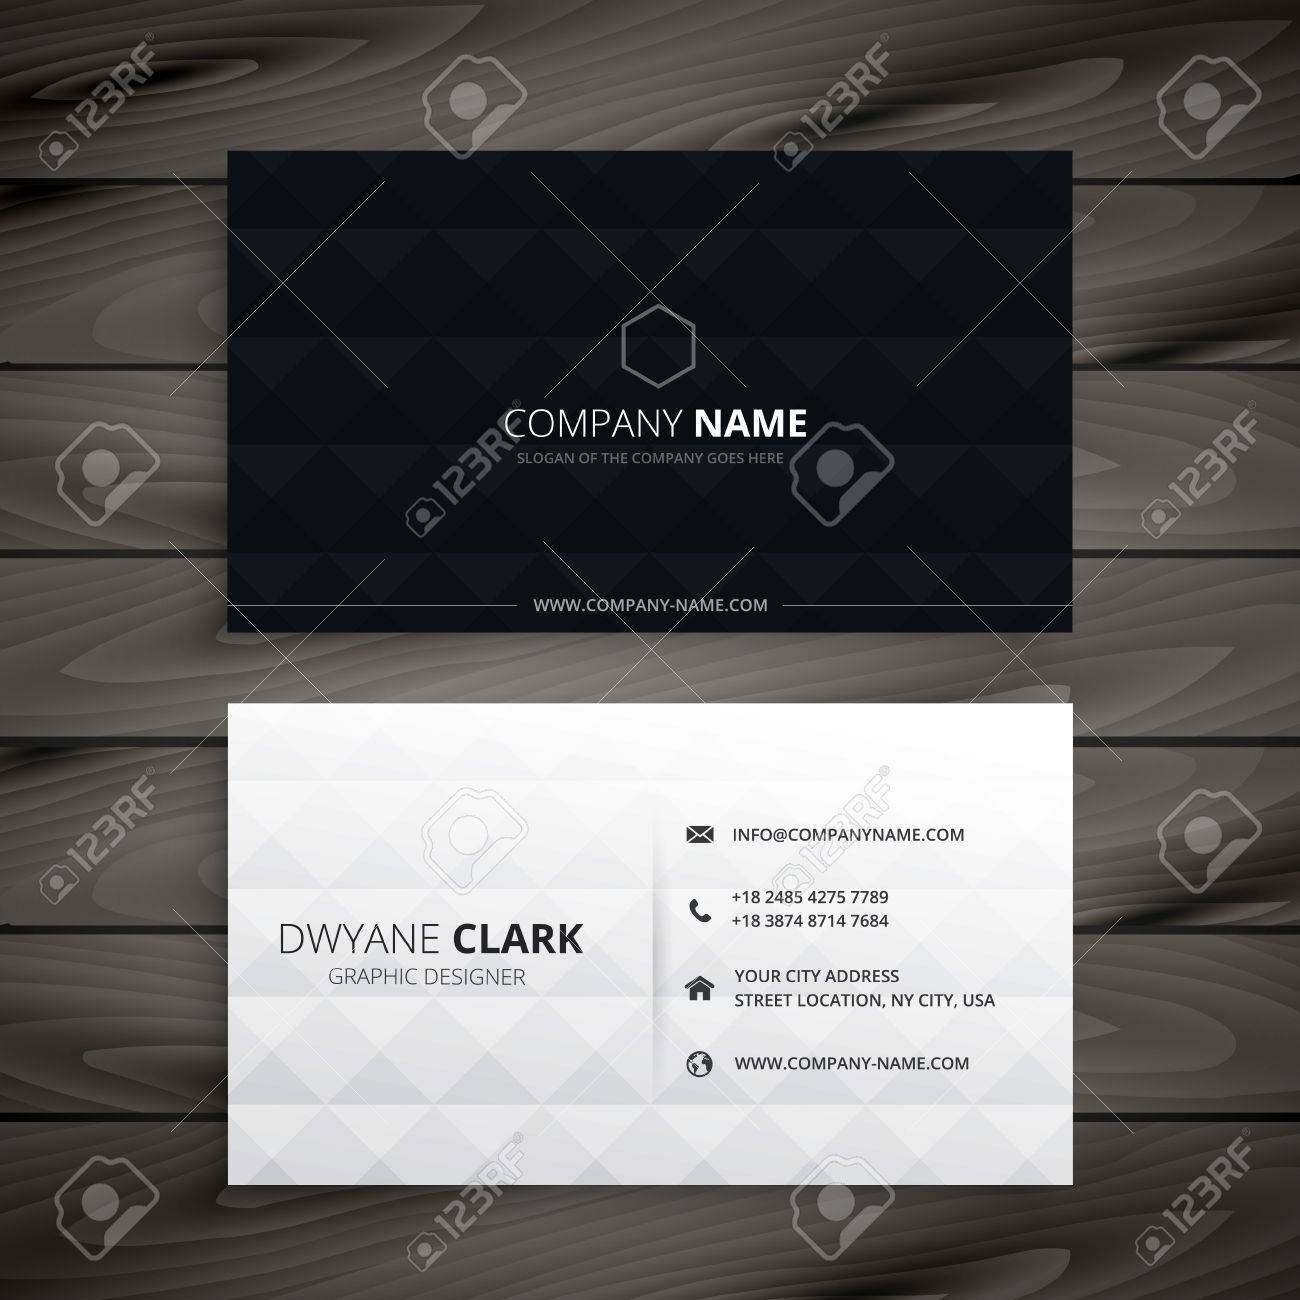 simple black and white diamond business card - 55077628